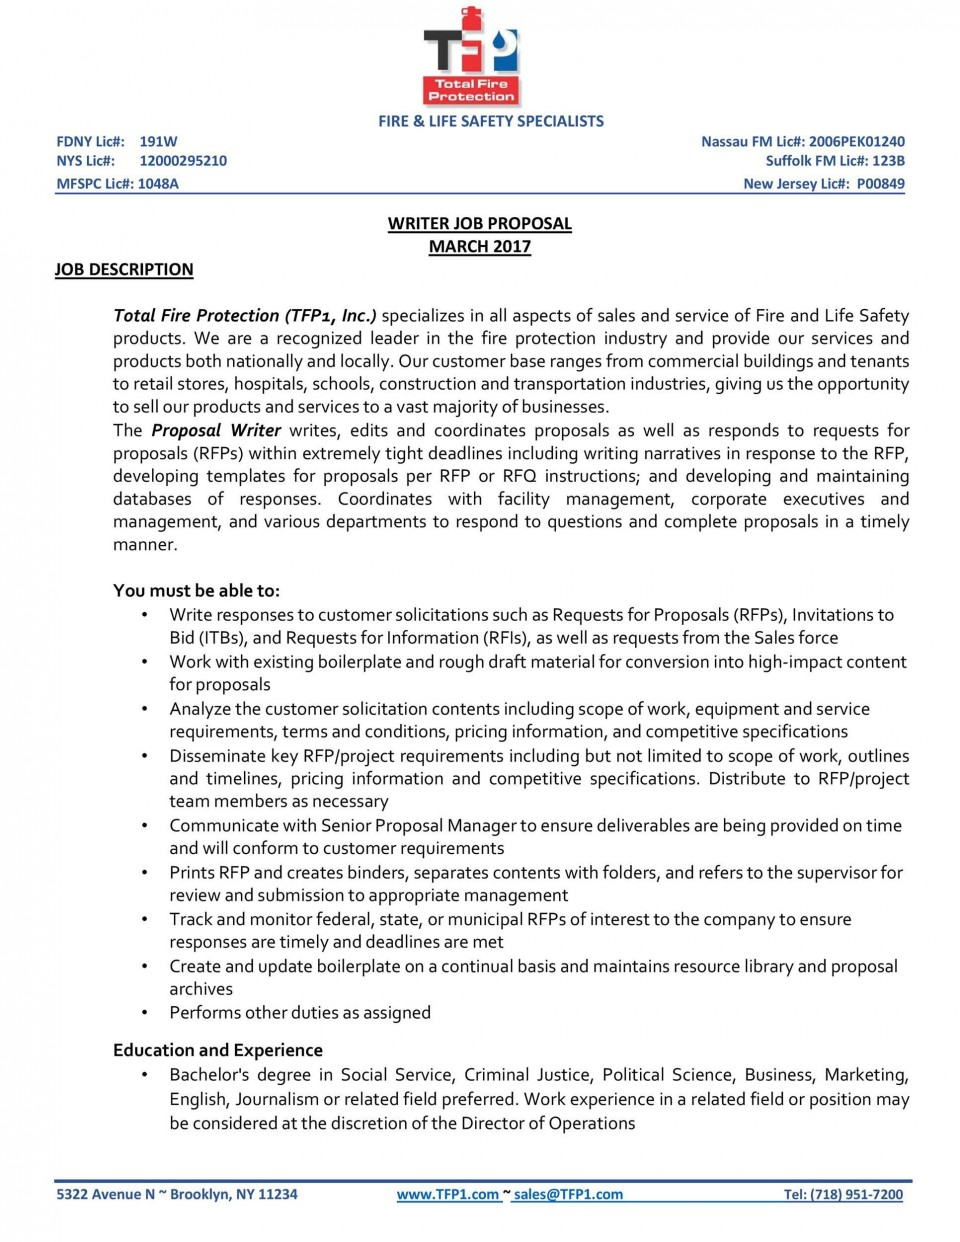 006 Breathtaking Writing A Job Proposal Template Sample Example 960